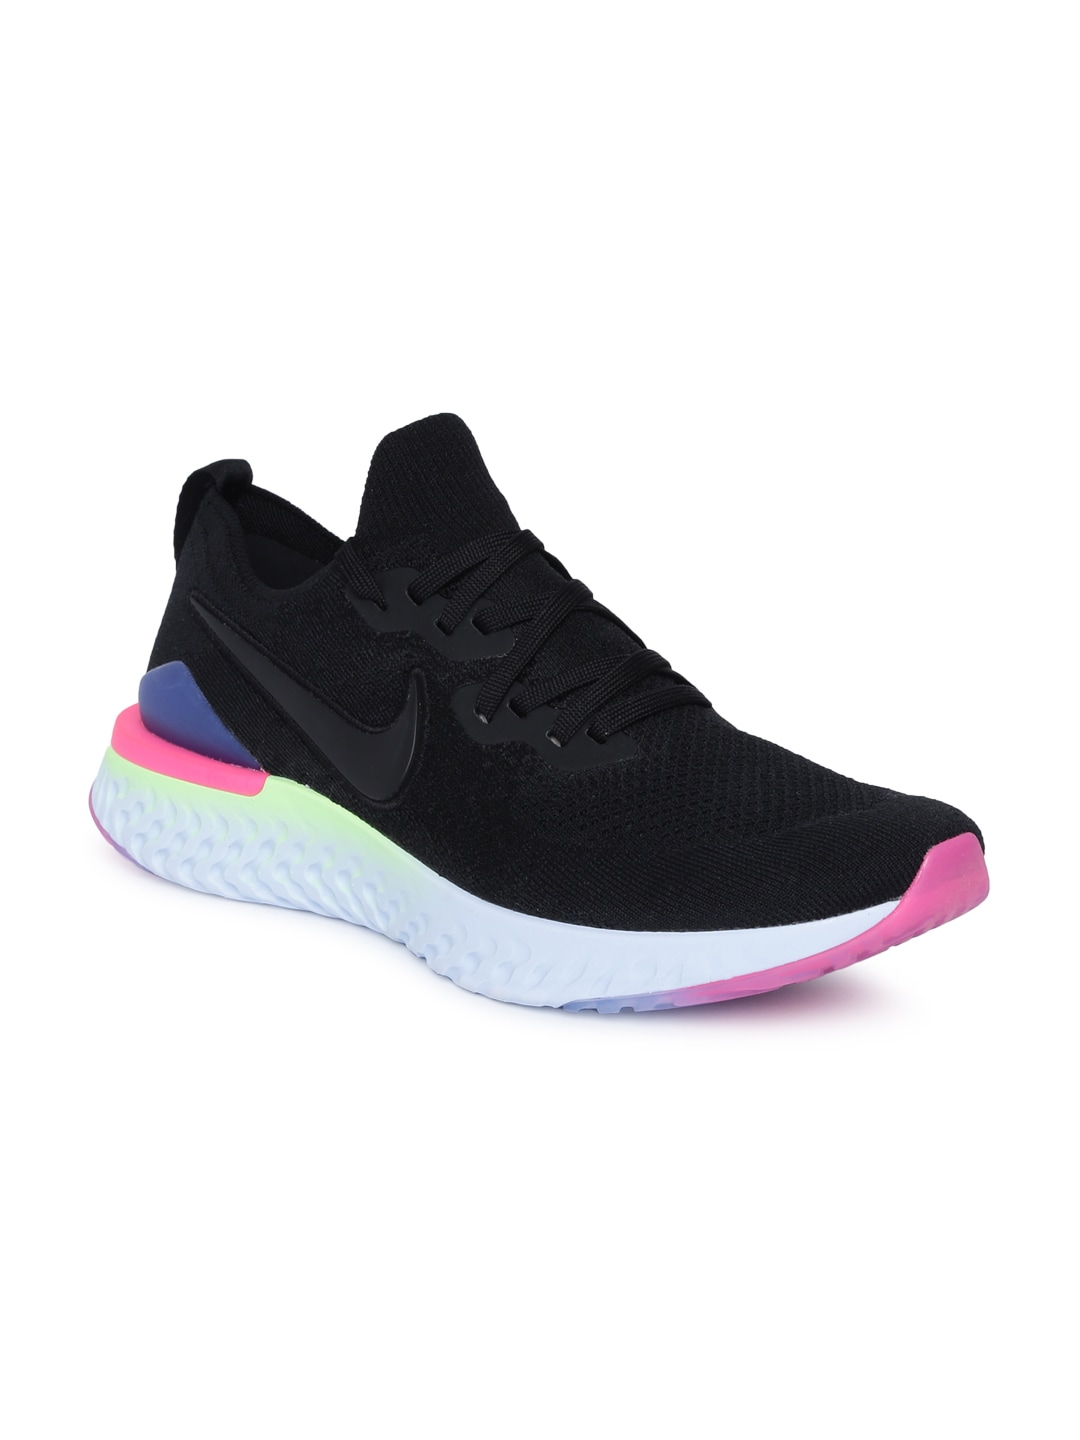 24622b95db037 Nike Running Shoes - Buy Nike Running Shoes Online